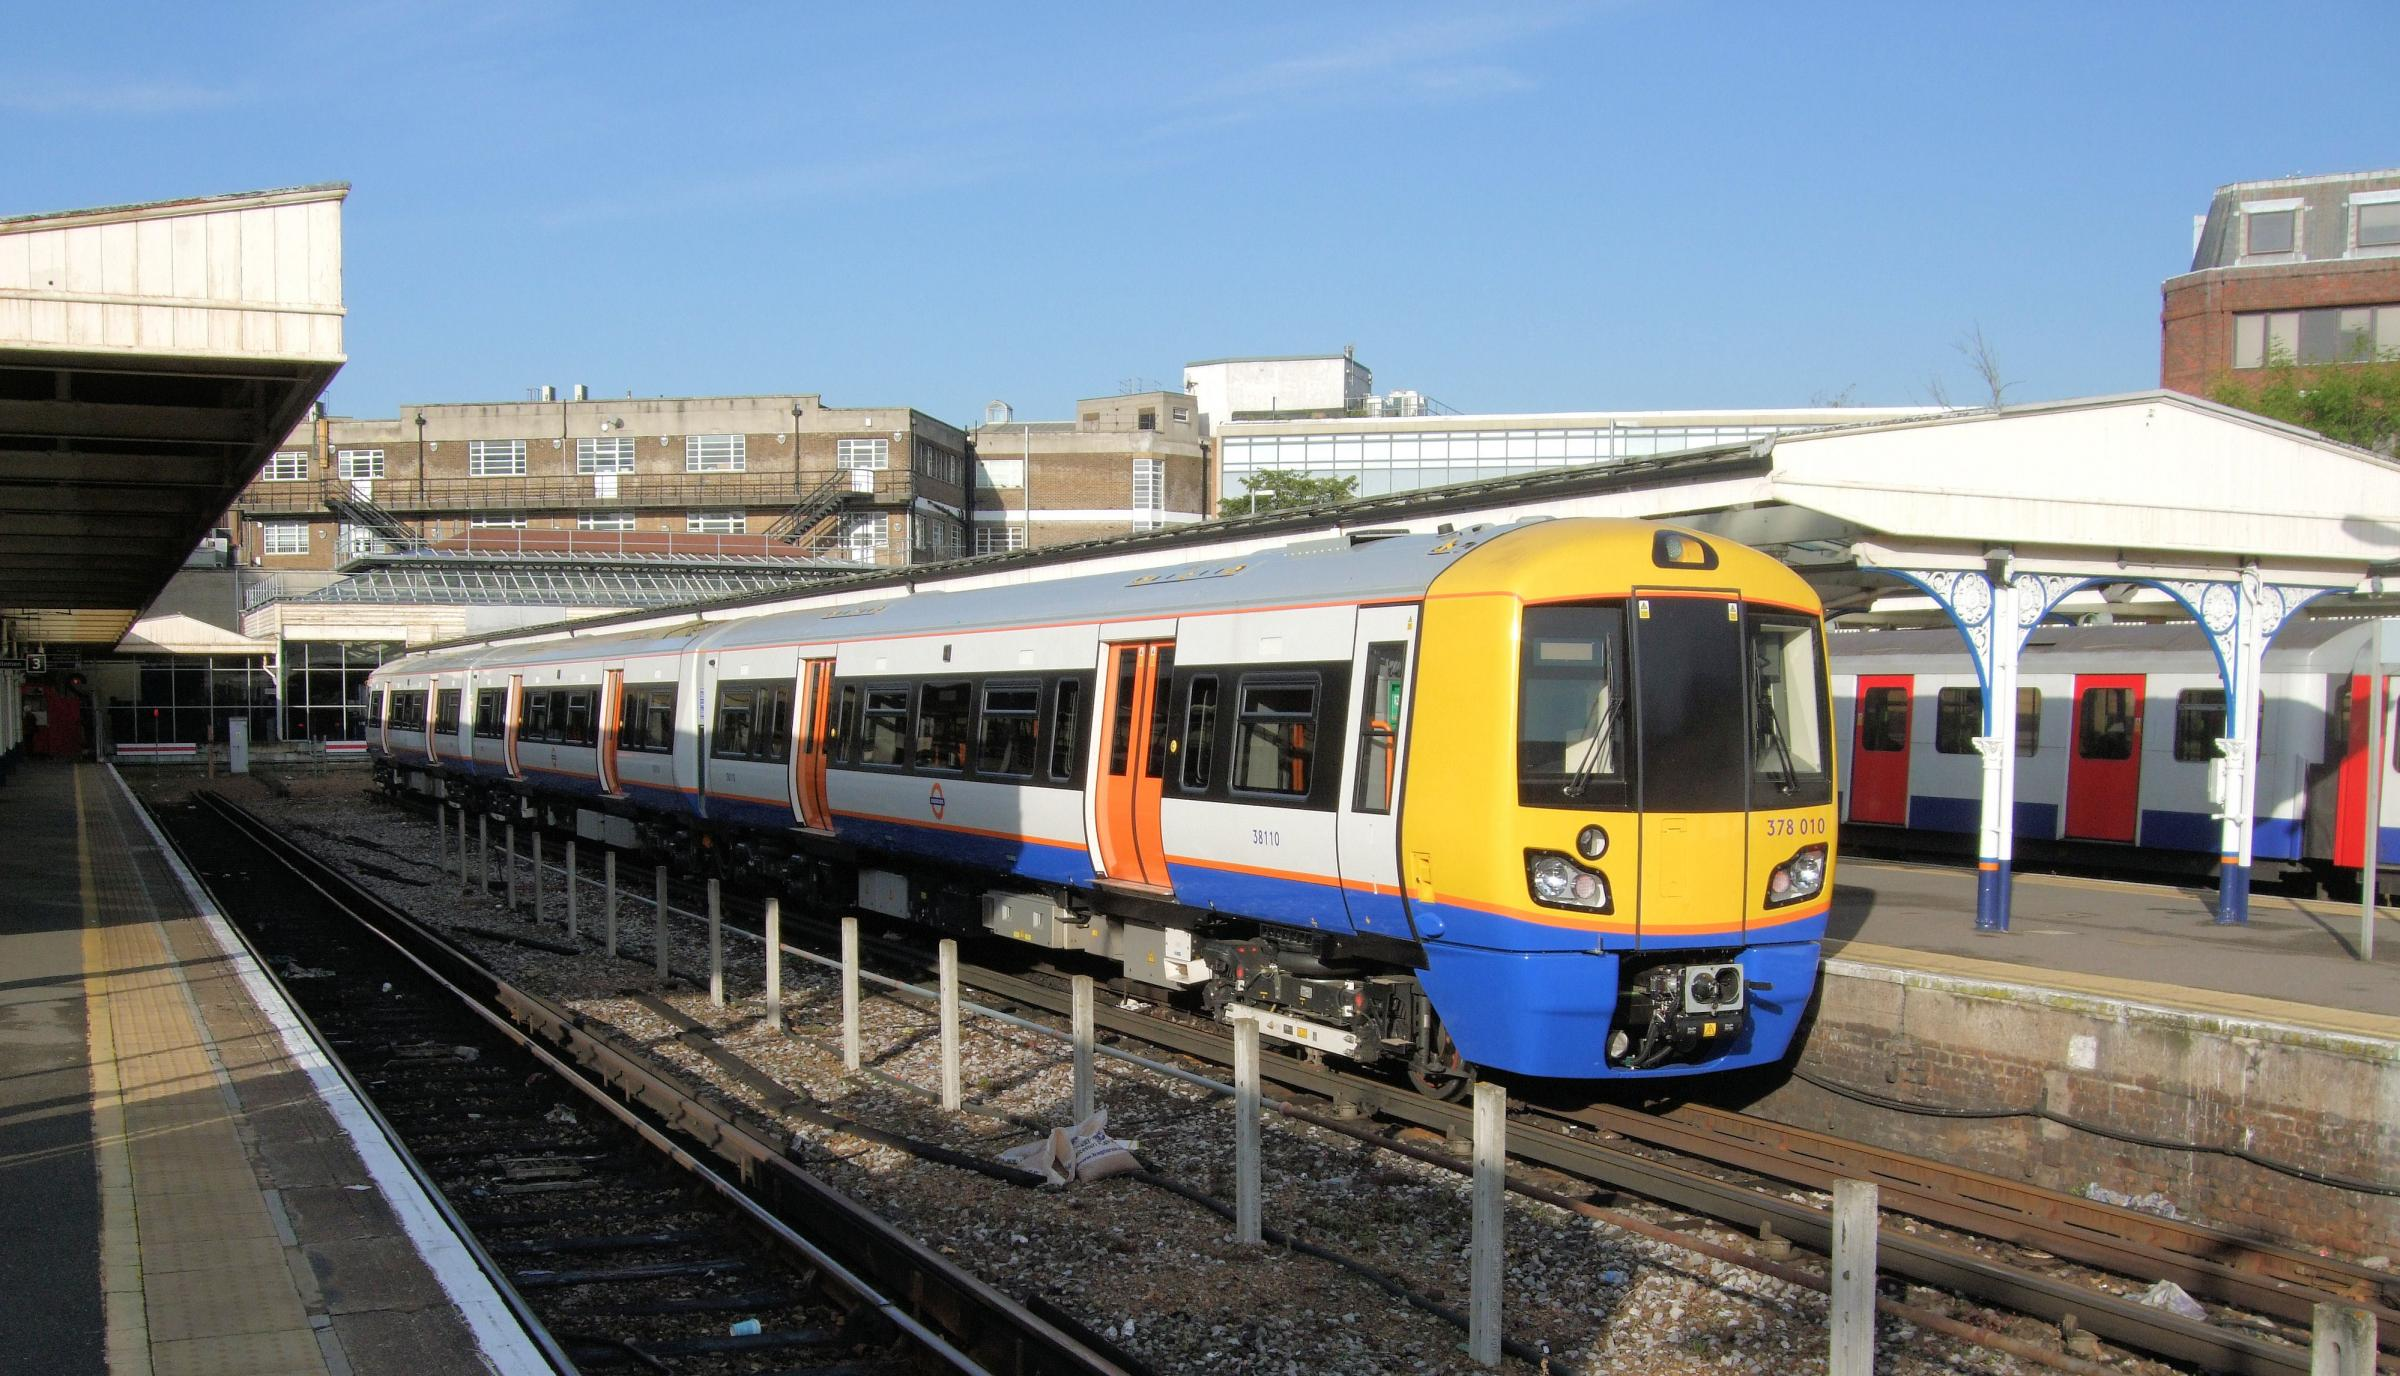 Service suspended to Richmond due to fire alert on London Overground